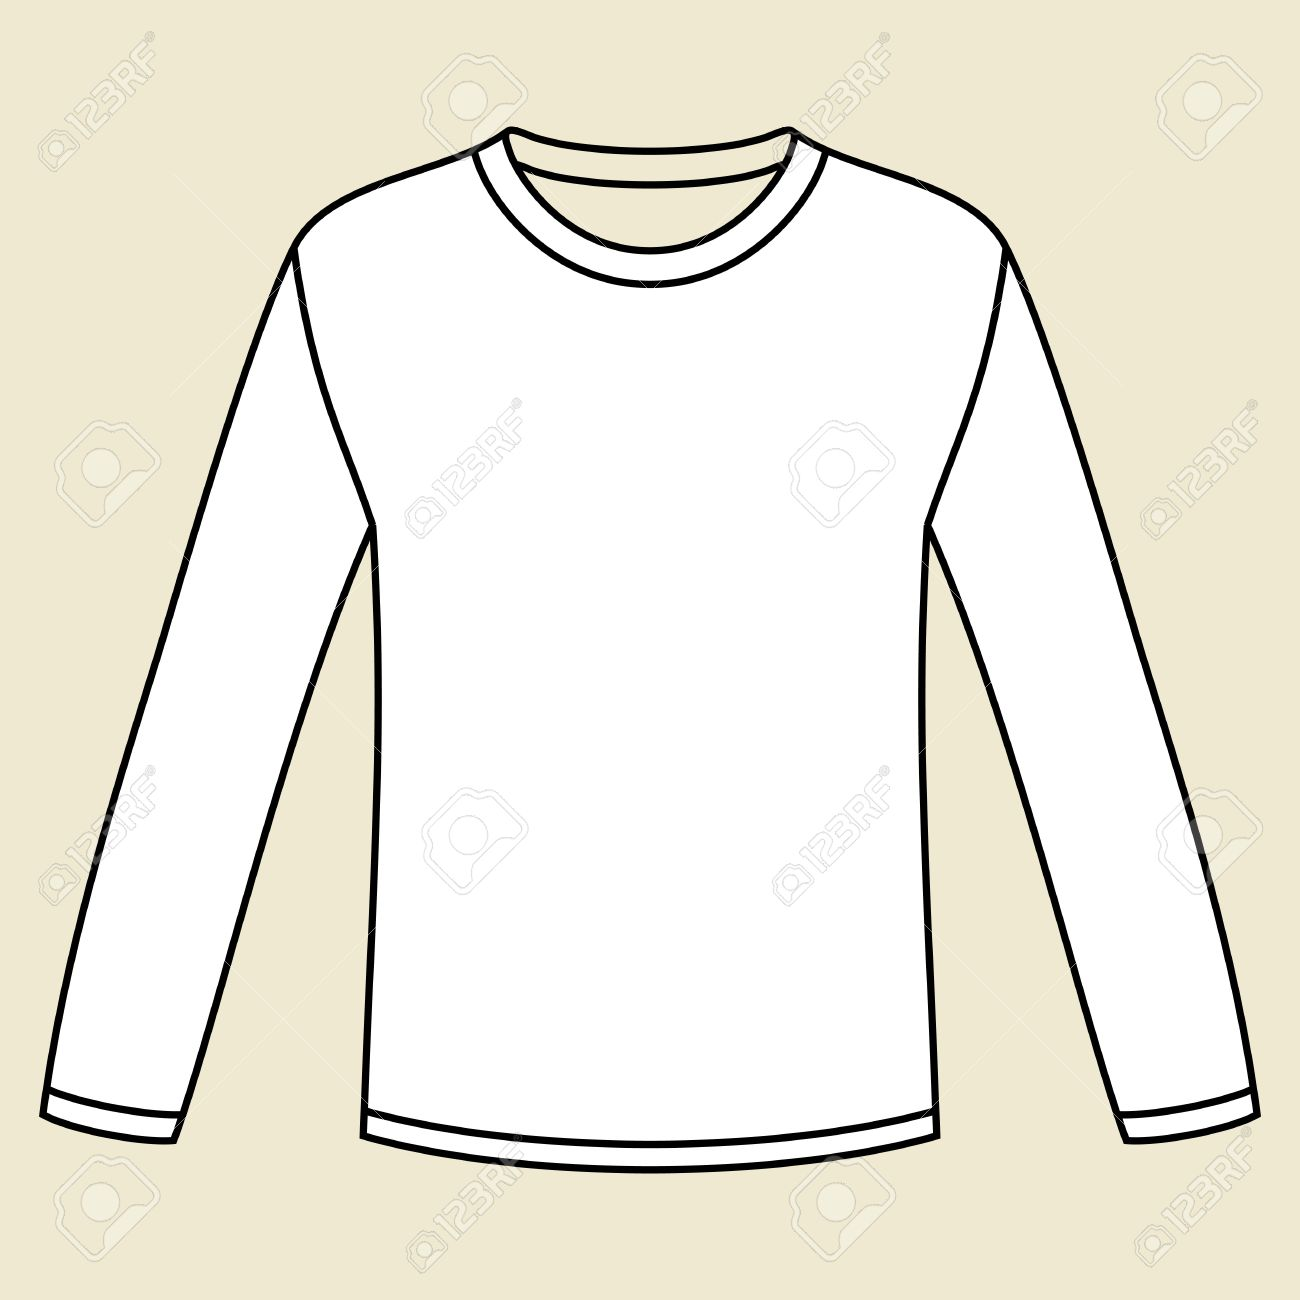 Black Long Sleeved T Shirt Template Royalty Free Cliparts Vectors